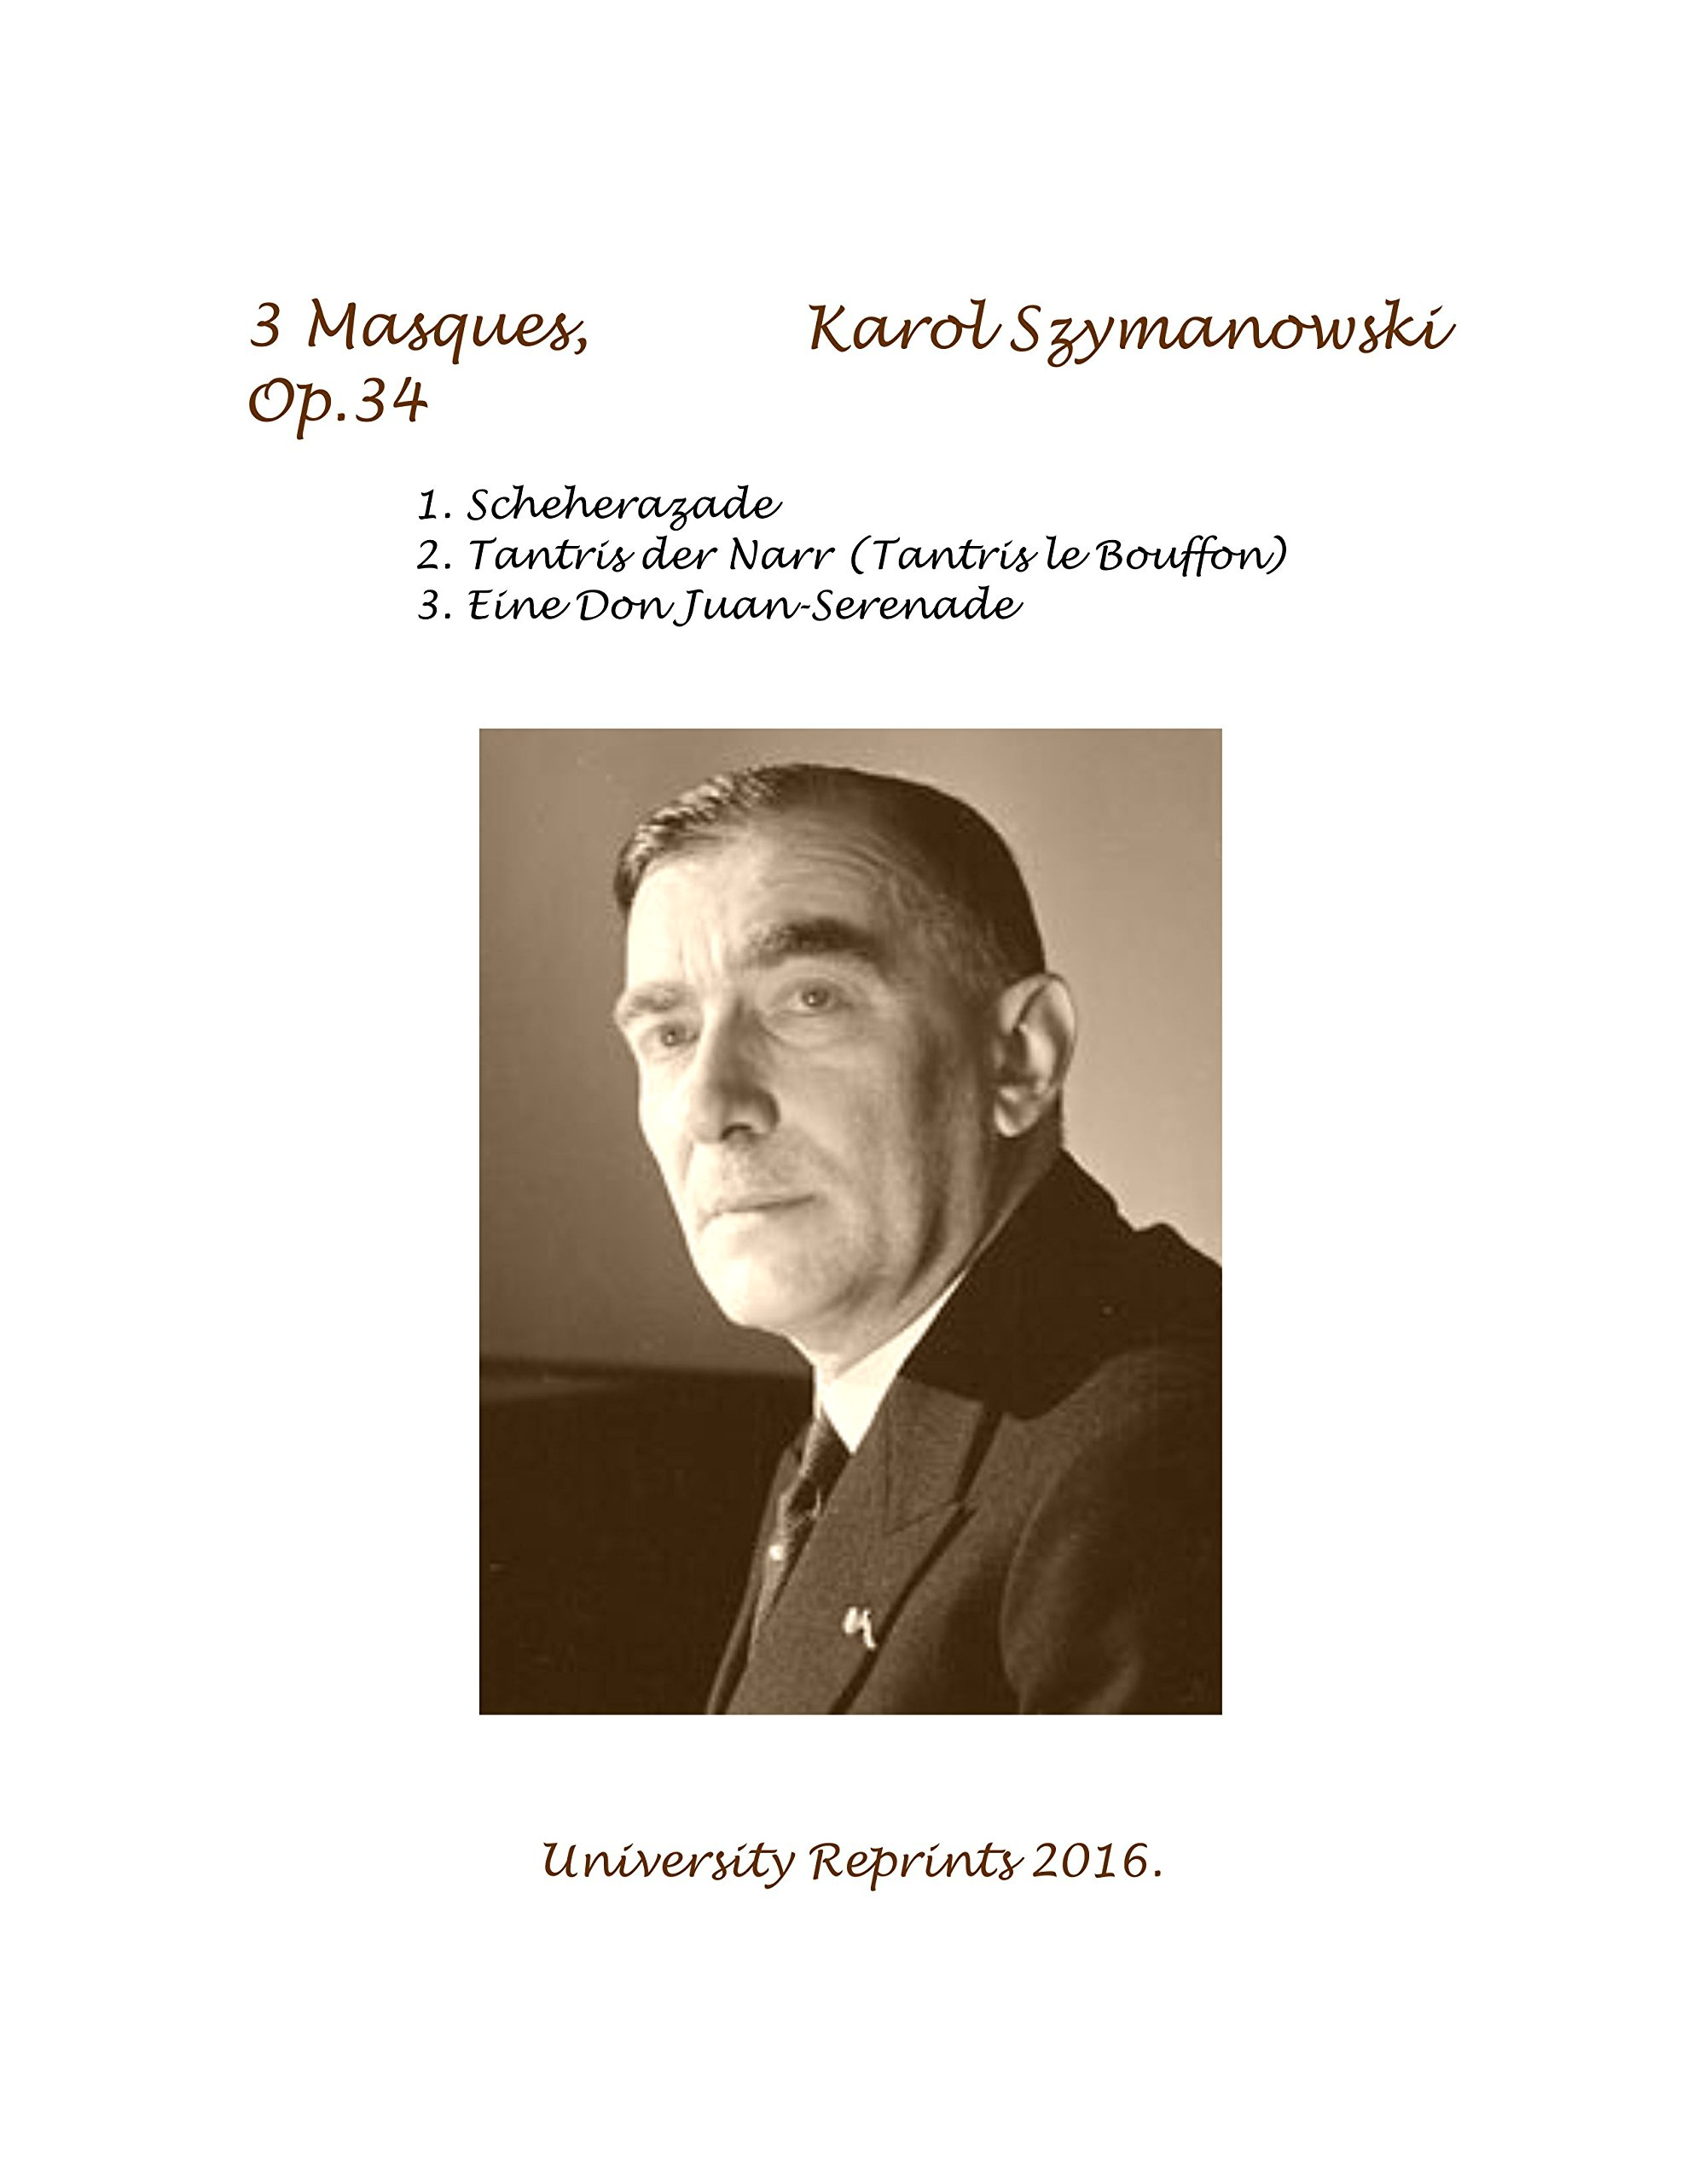 Download 3 Masques, Op.34 by Karol Szymanowski. [Piano Sore. Student Loose Leaf Facsimile Edition. Re-Imaged from Original for Greater Clarity. 2016] pdf epub